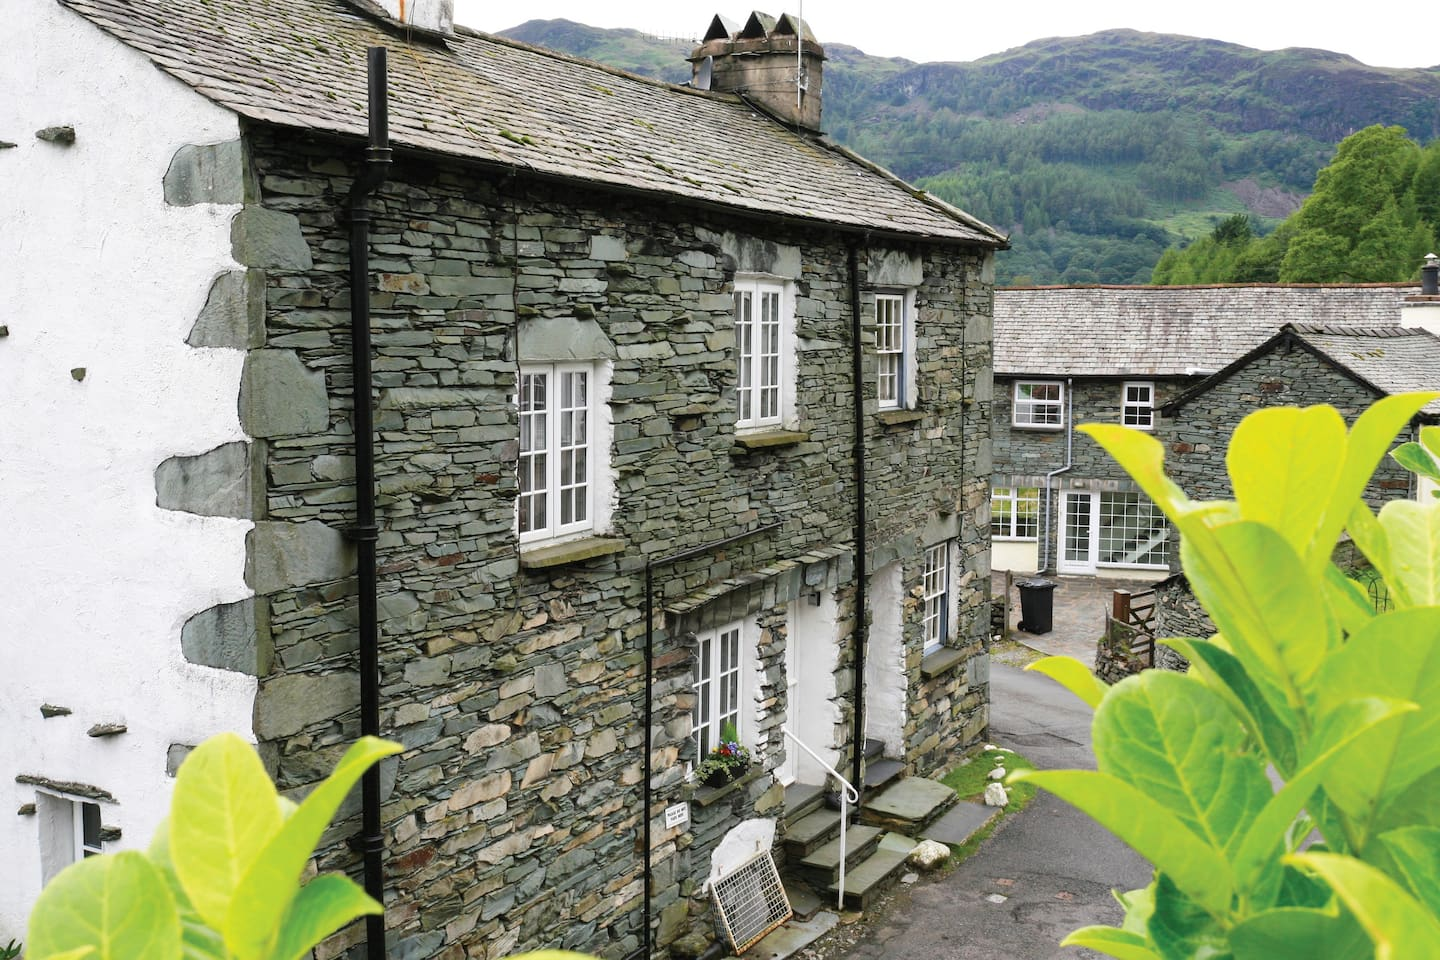 Built in the 1800's as a quarry workers cottage, Fountain Cottage is a Traditional slate built lakeland cottage on 3 levels